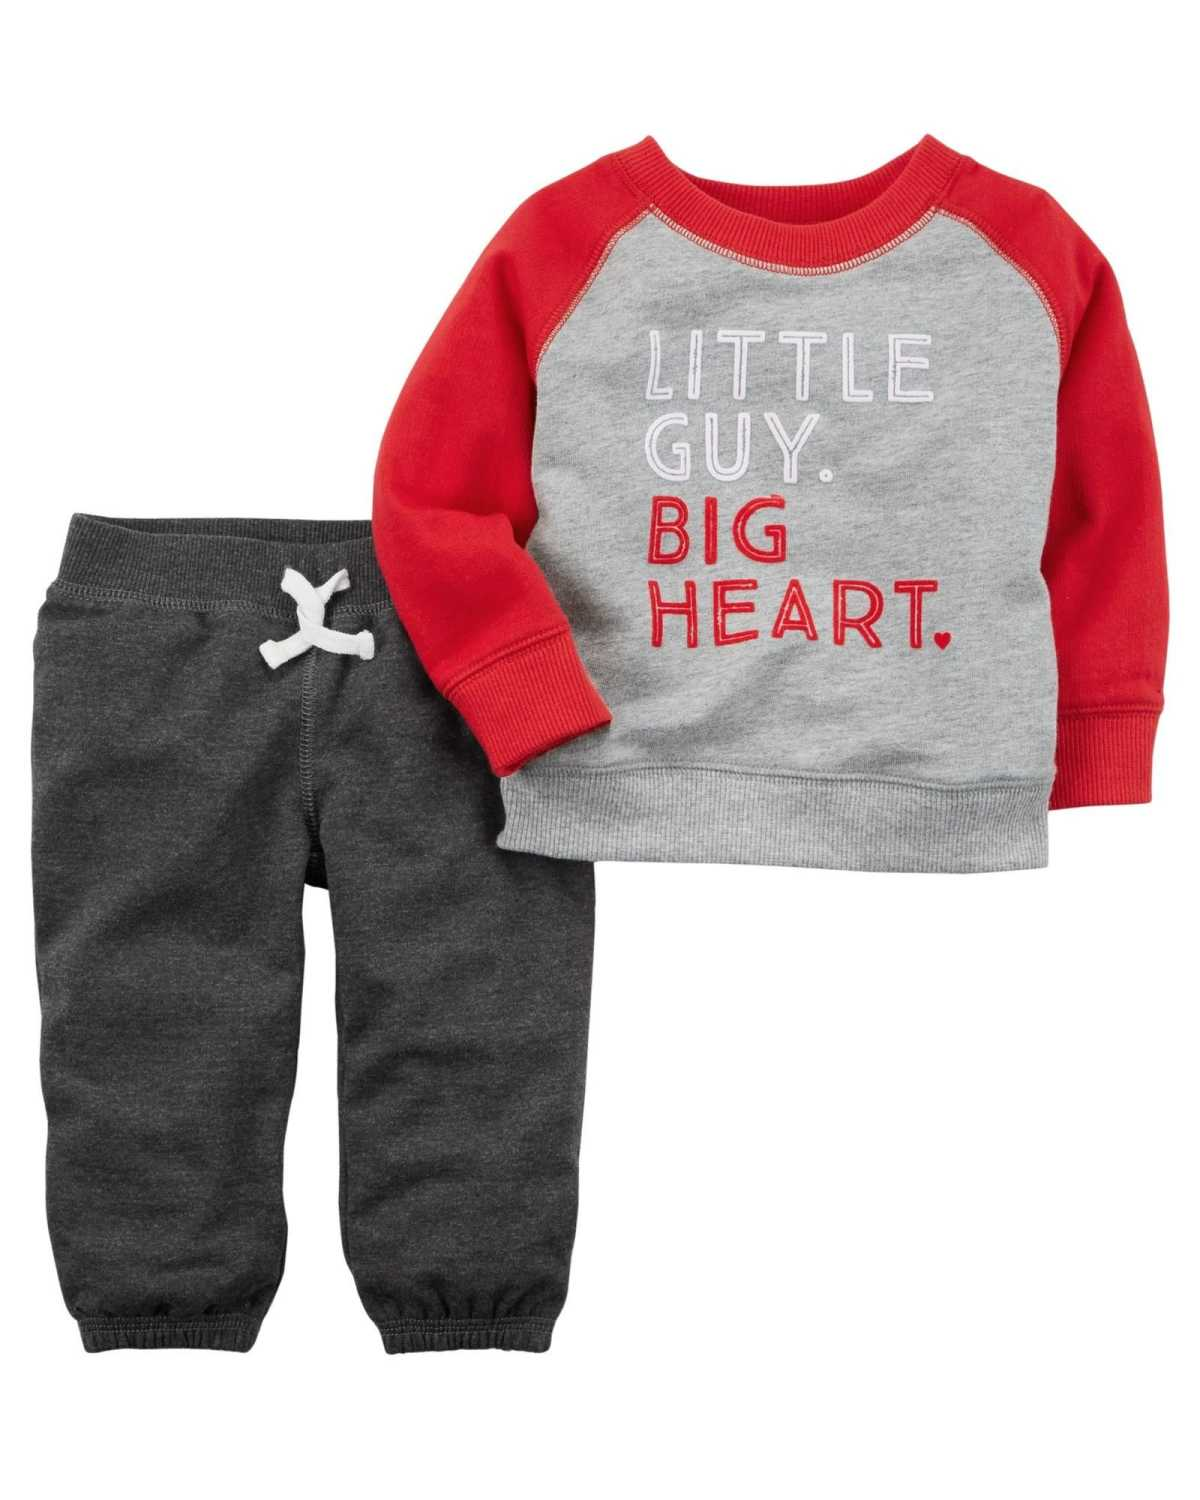 Little guy, big heart outfit